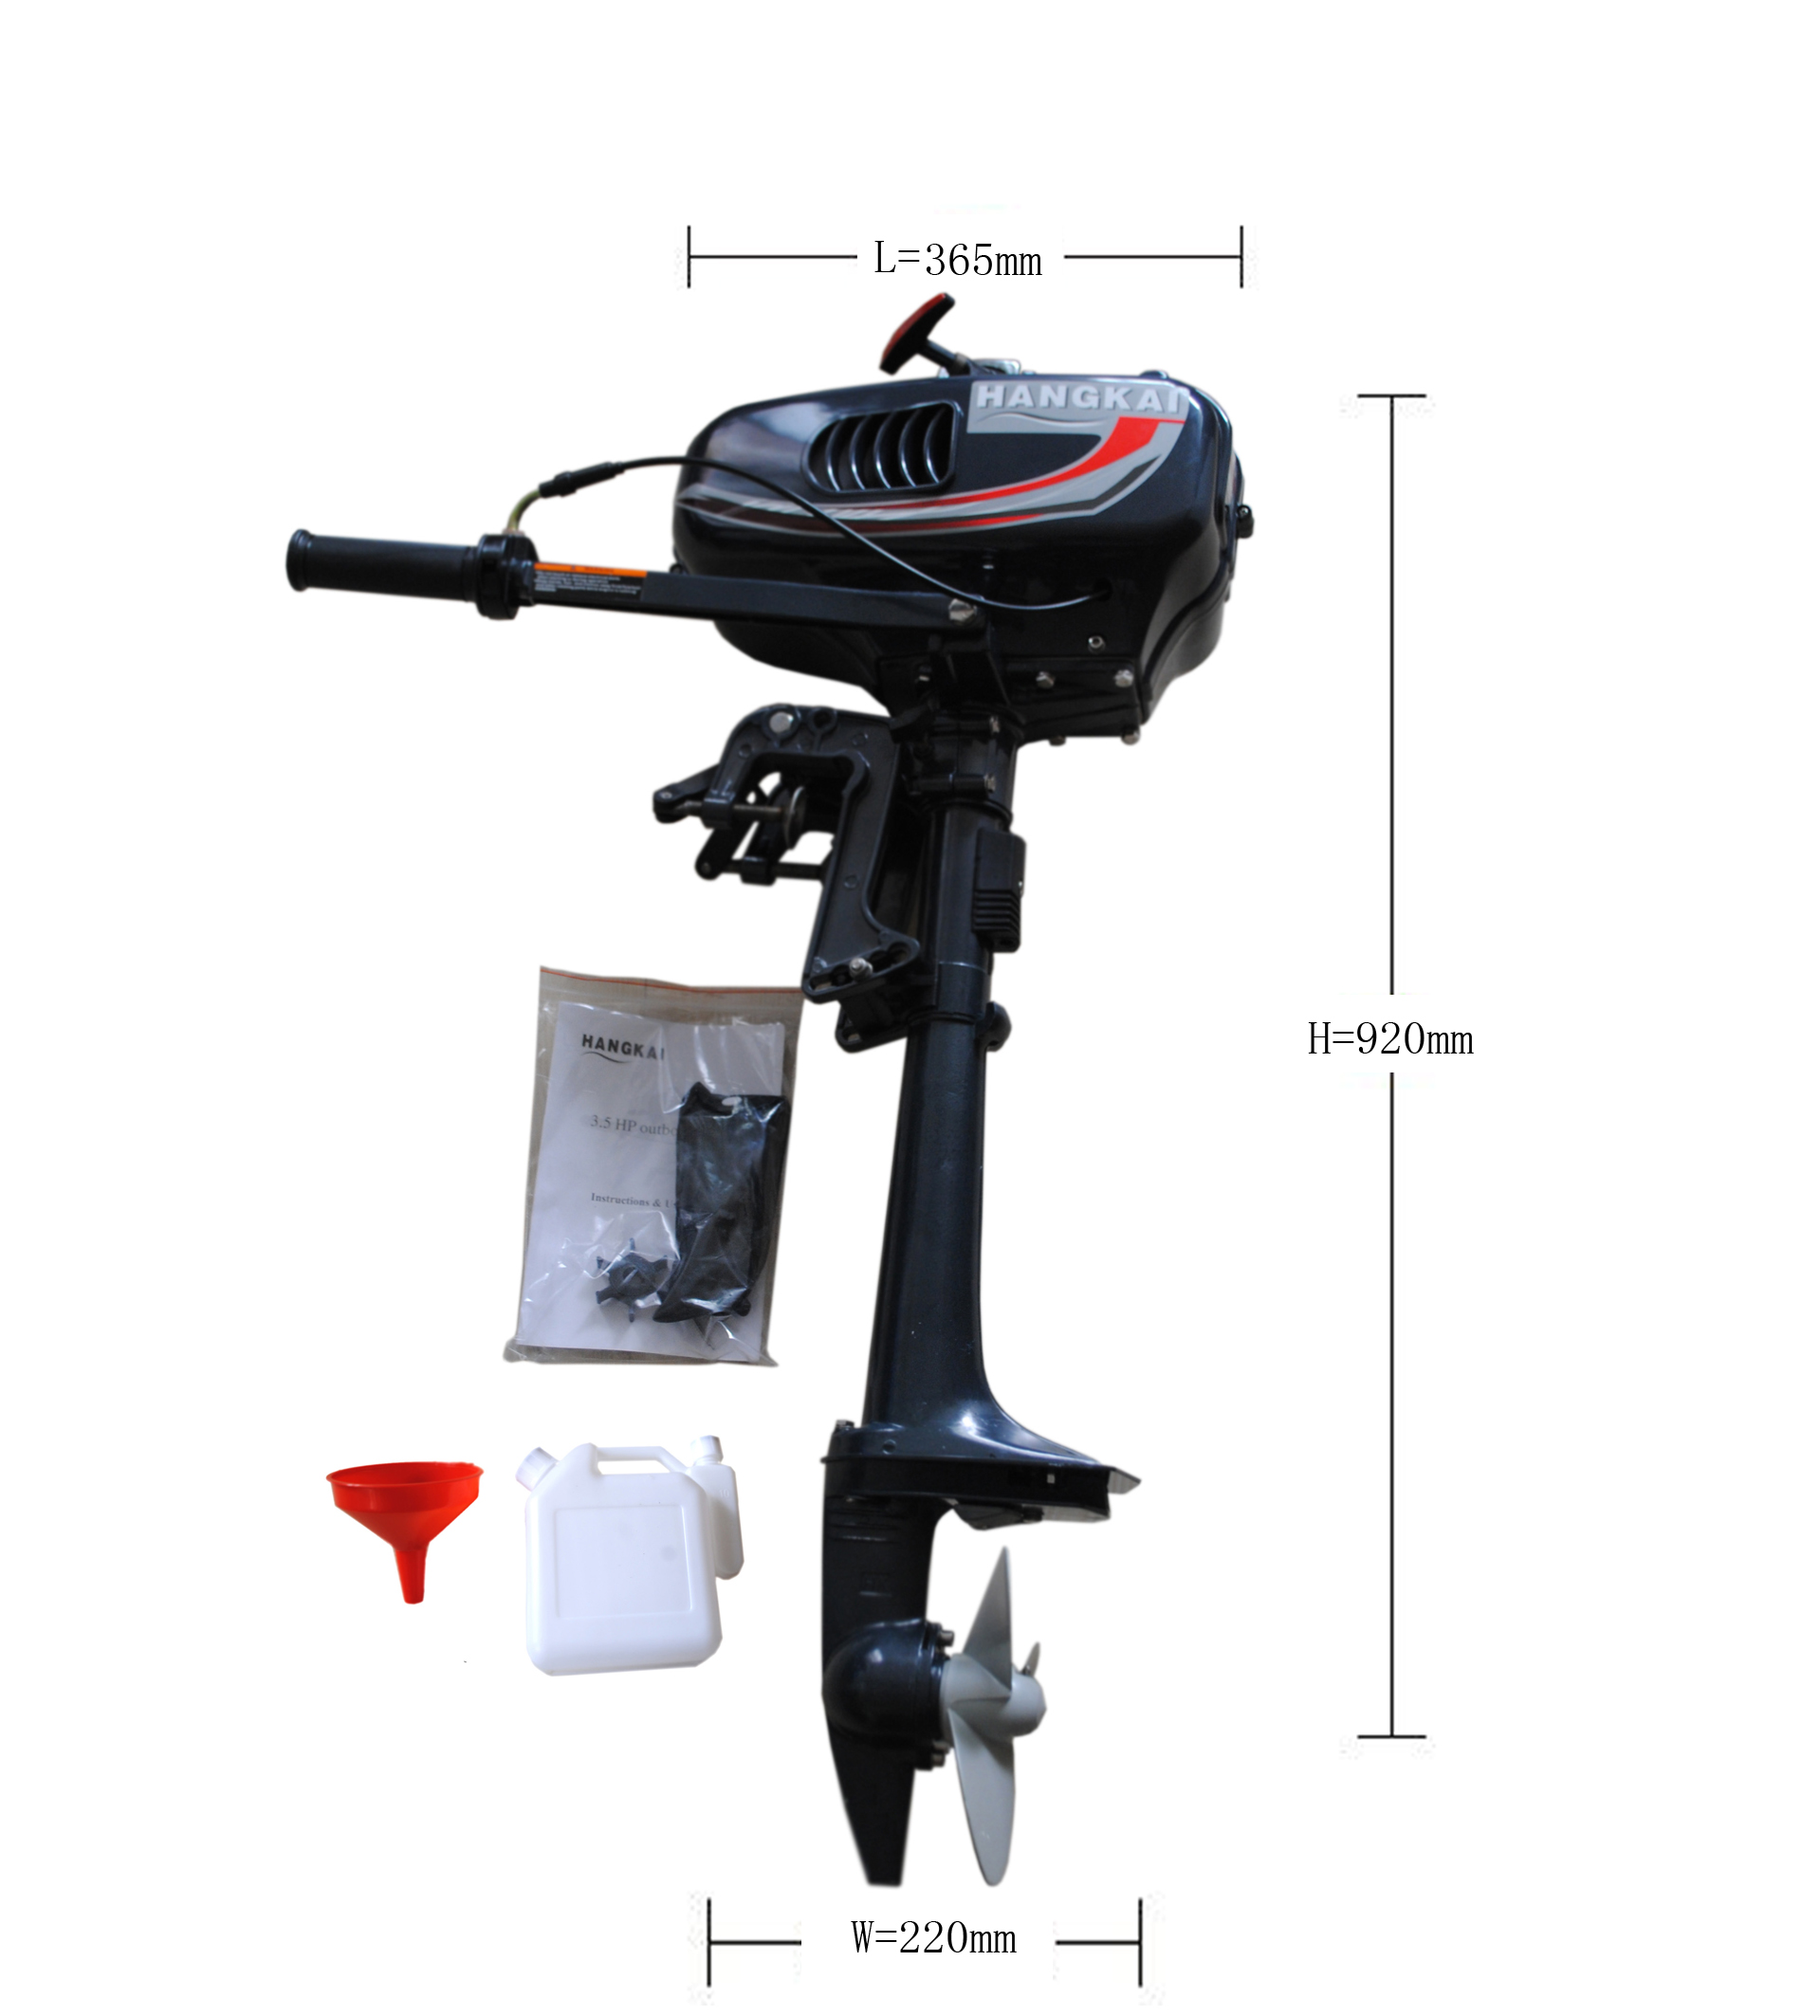 New mariner mercury 49cc stroke outboard engine for 5 hp motor specification